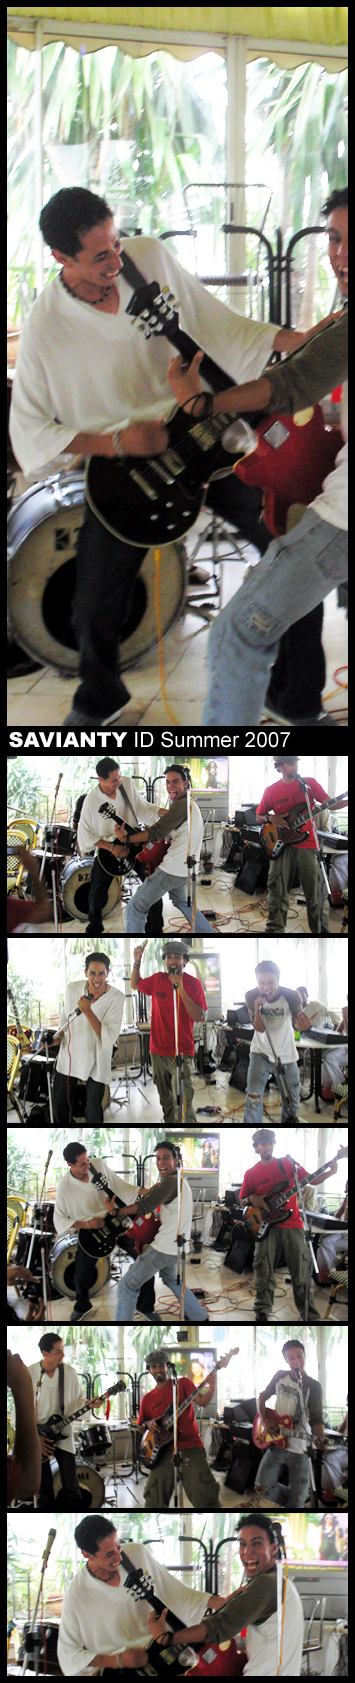 Summer ID 2007 by savianty